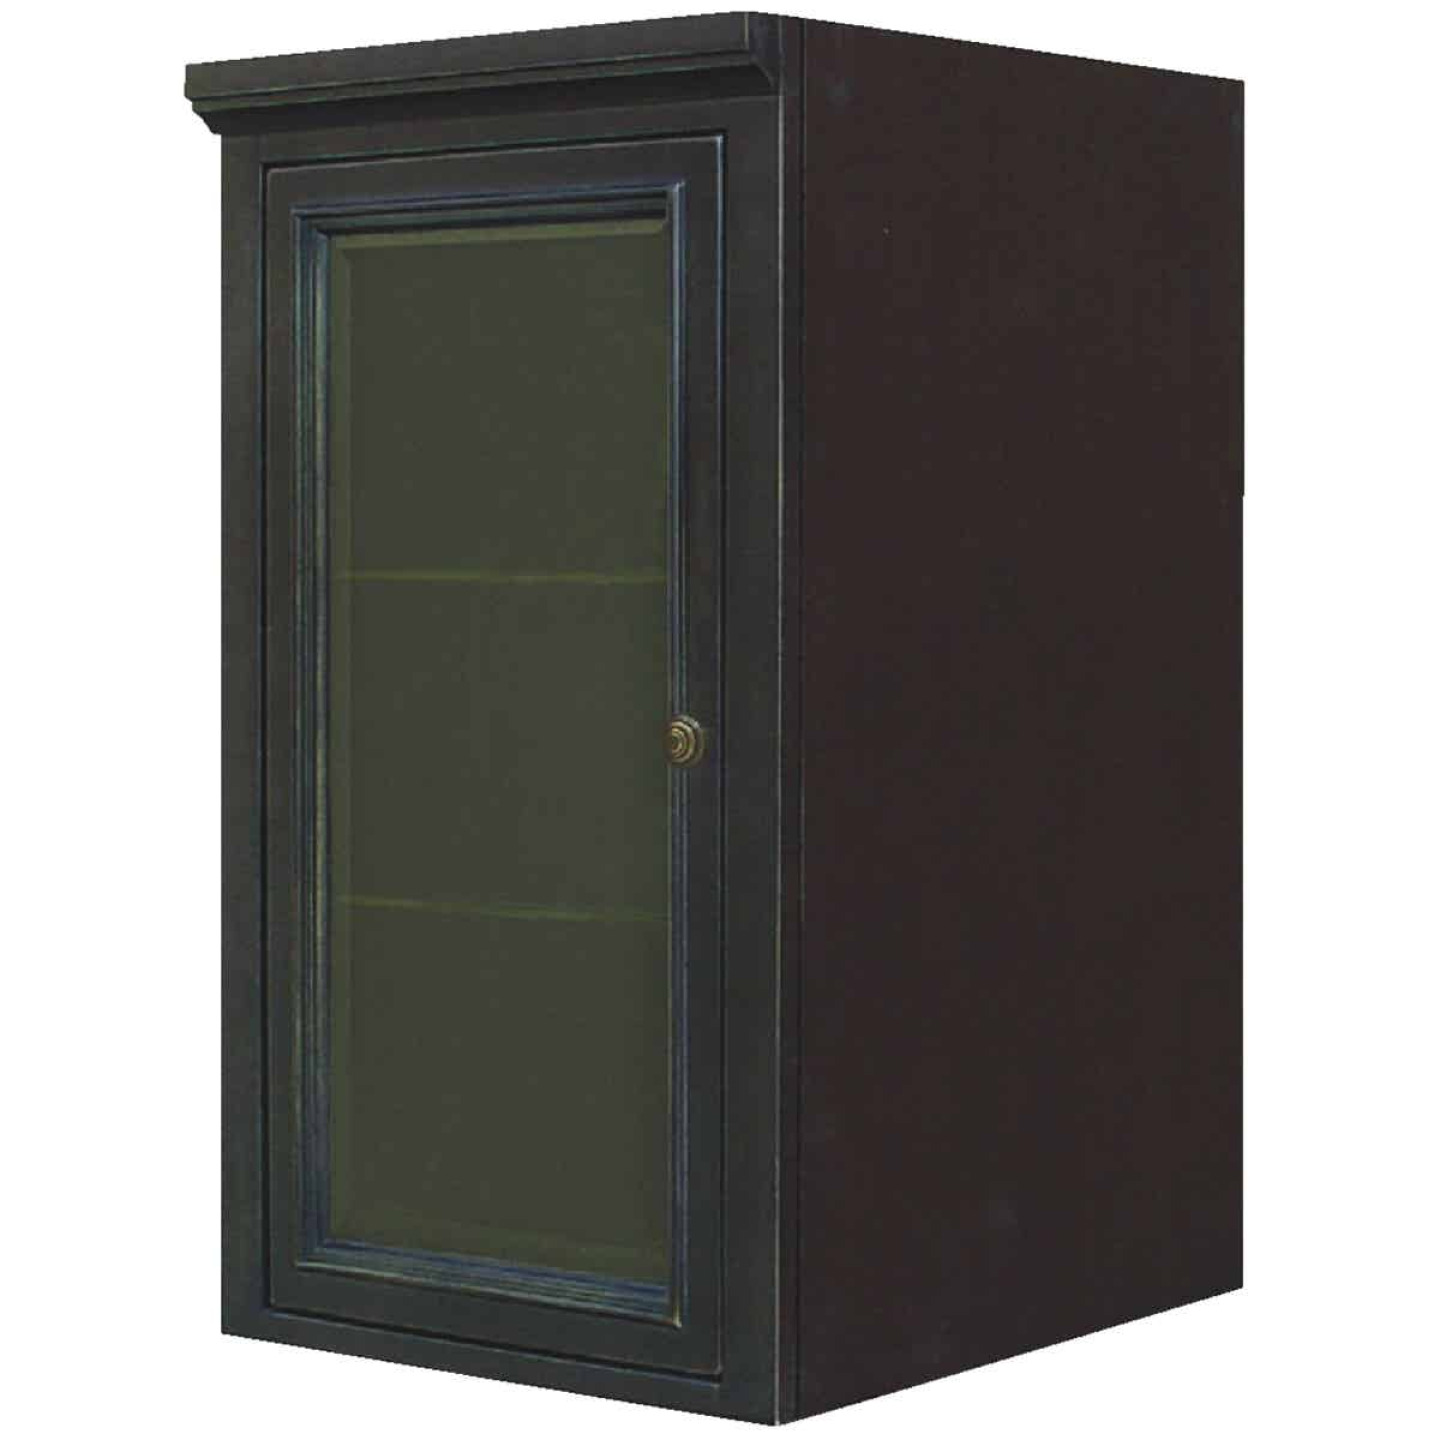 Sunny Wood Barton Hill 18 In. W x 36 In. H x 21 In. D Black Onyx Linen Cabinet Top Image 1